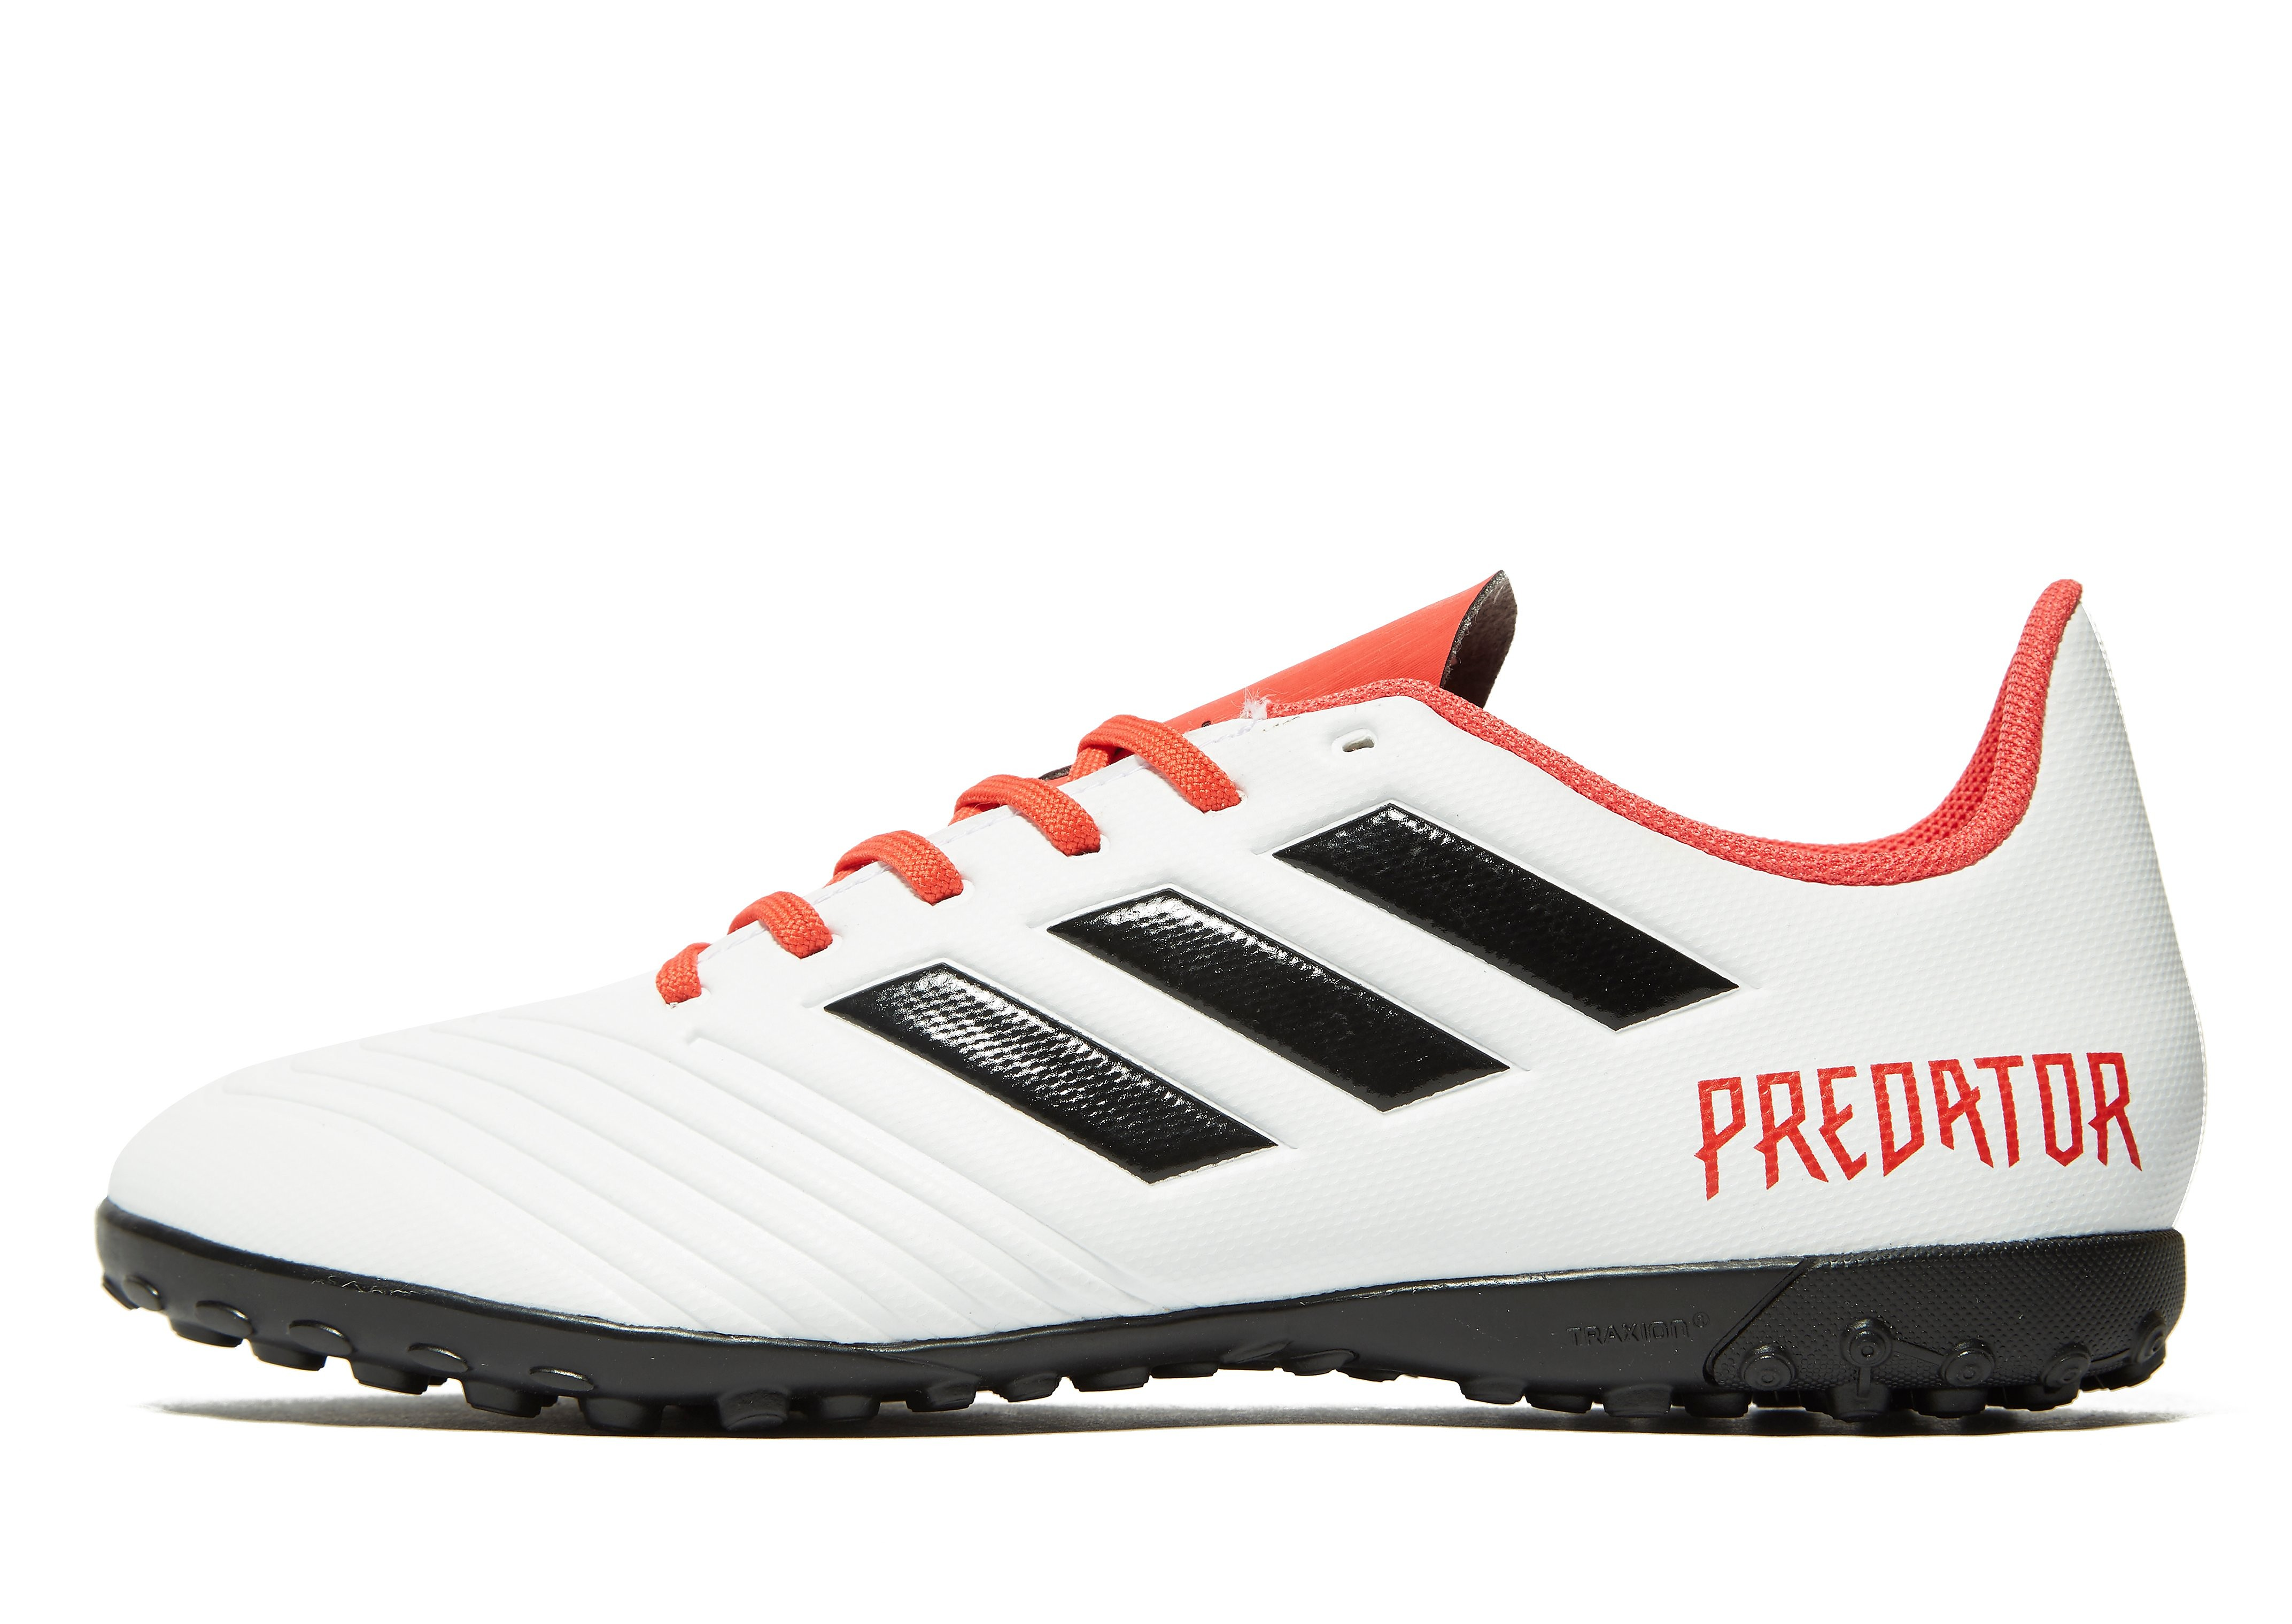 adidas Cold Blooded Predator 18.4 TF